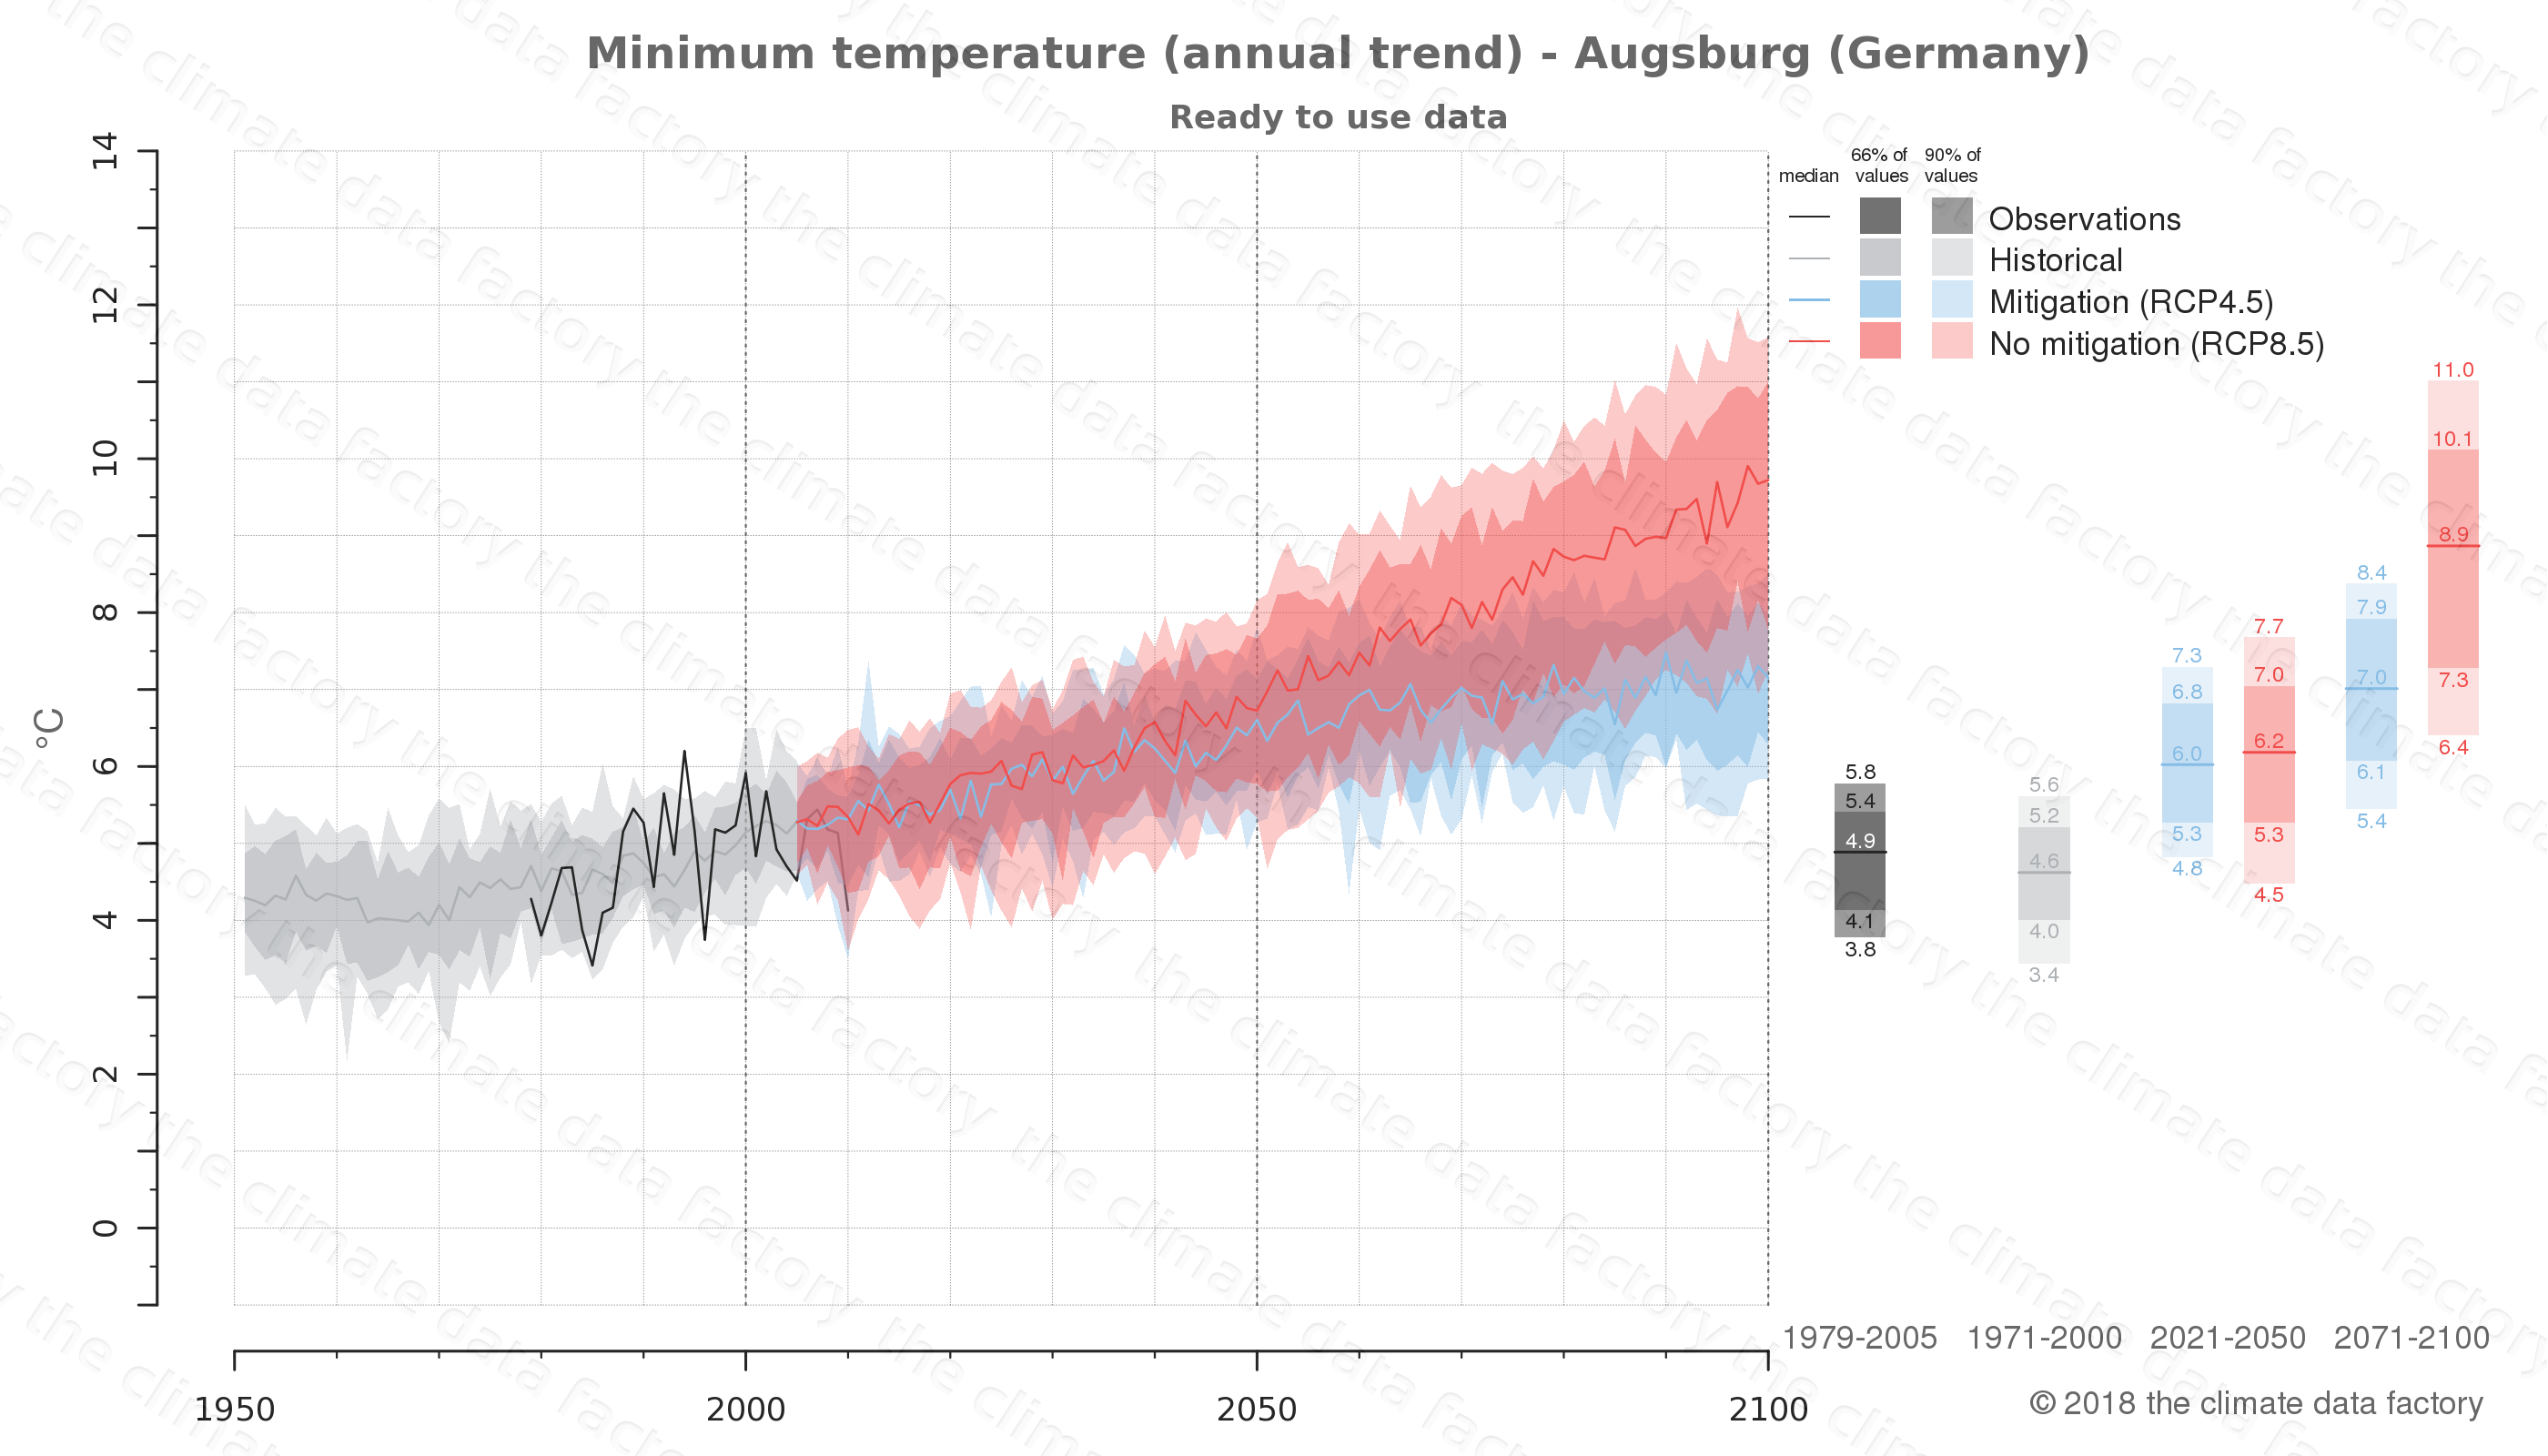 climate change data policy adaptation climate graph city data minimum-temperature augsburg germany